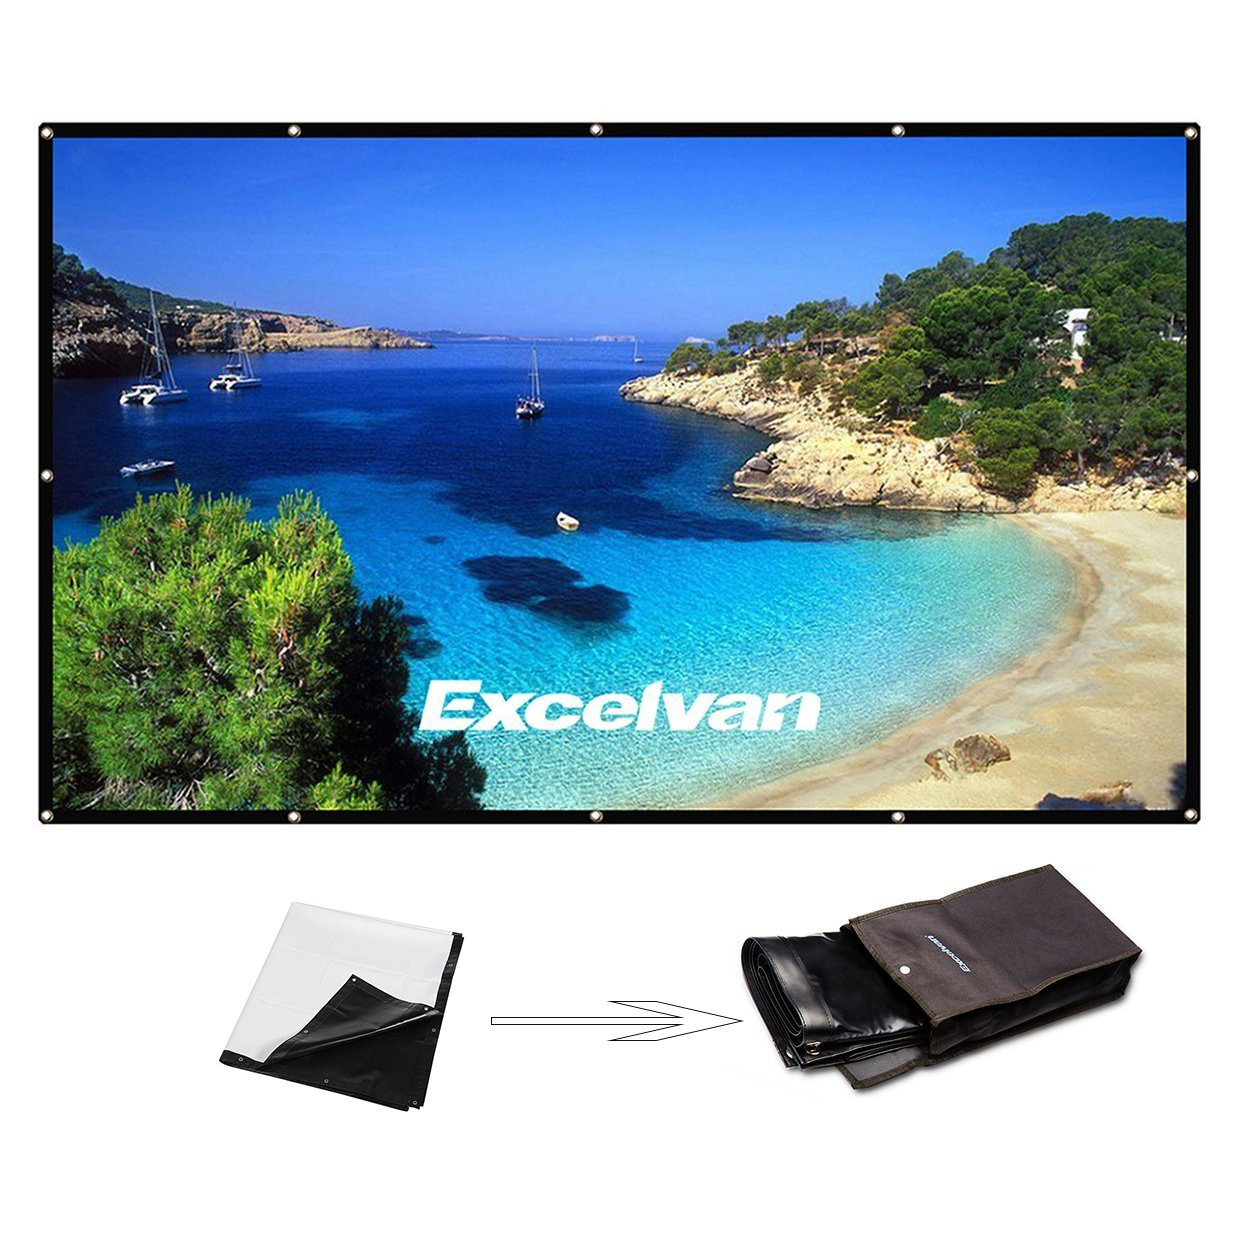 120 Inch 16:9 Portable Projector Screen High Contrast Collapsible PVC HD 4K Design with Hanging Hole Grommets for Front Projection Home Indoor and Outdoor Movie Match Party Excelvan 4331044086